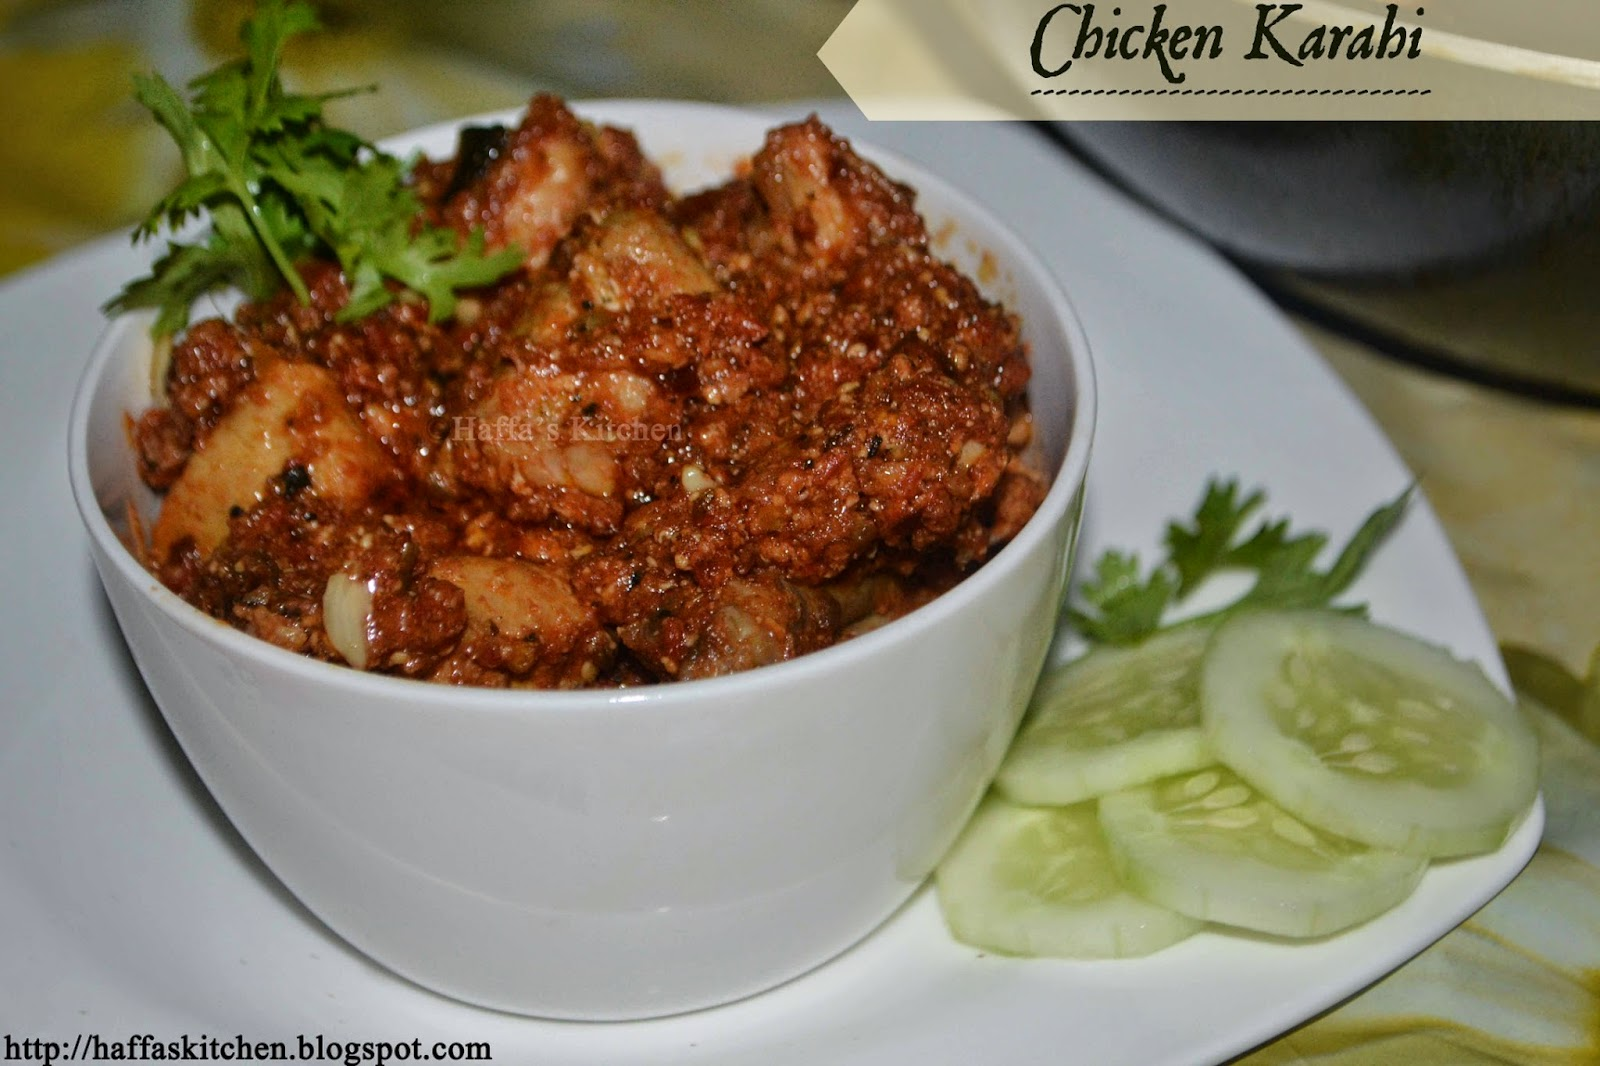 chicken karahi recipe, kadai chicken recipe, kadai chicken, chicken kadai, chicken dishes,